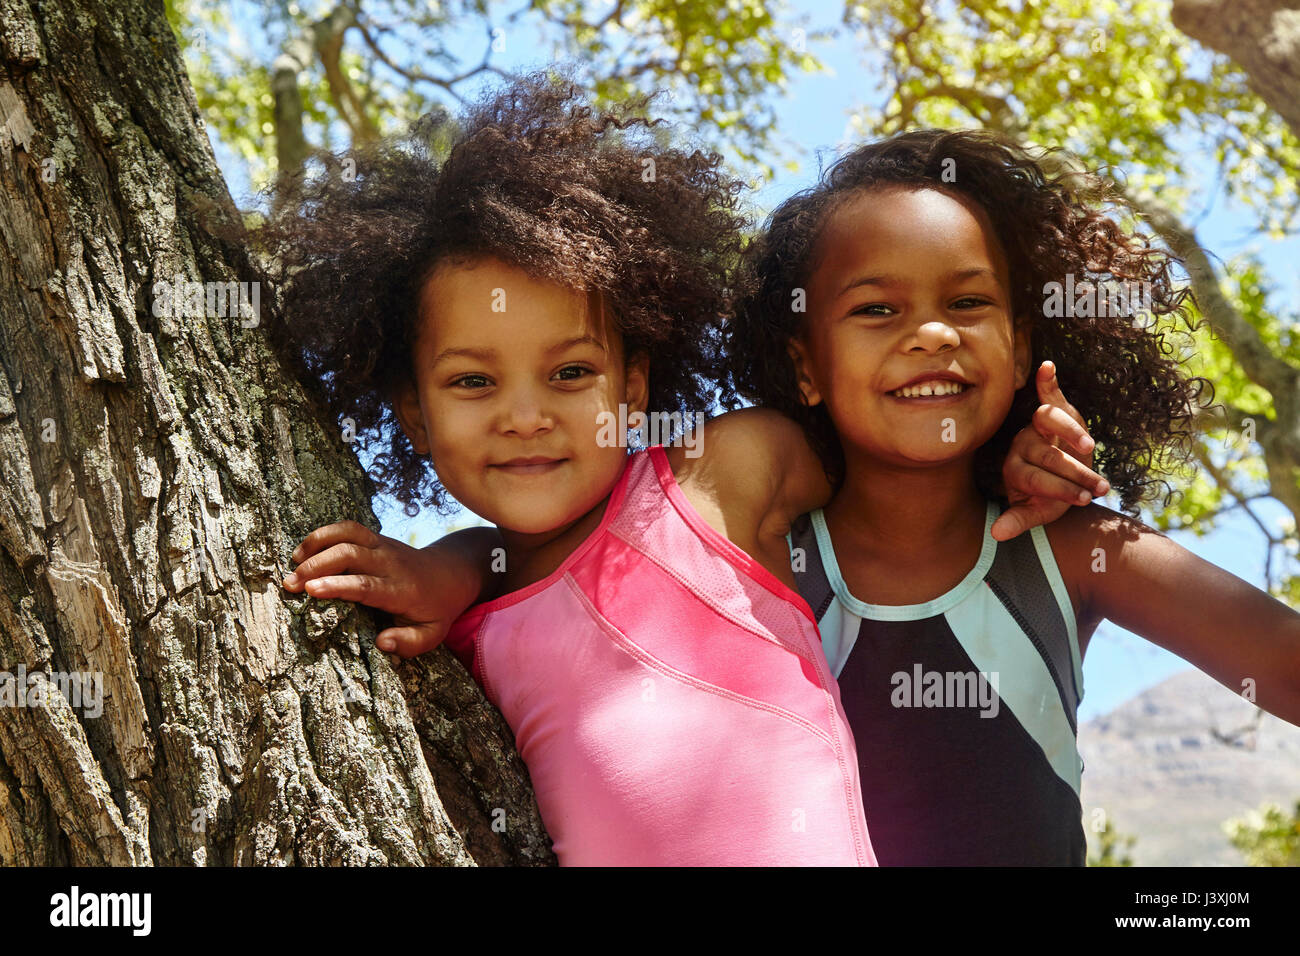 Portrait of two young sisters, climbing tree - Stock Image